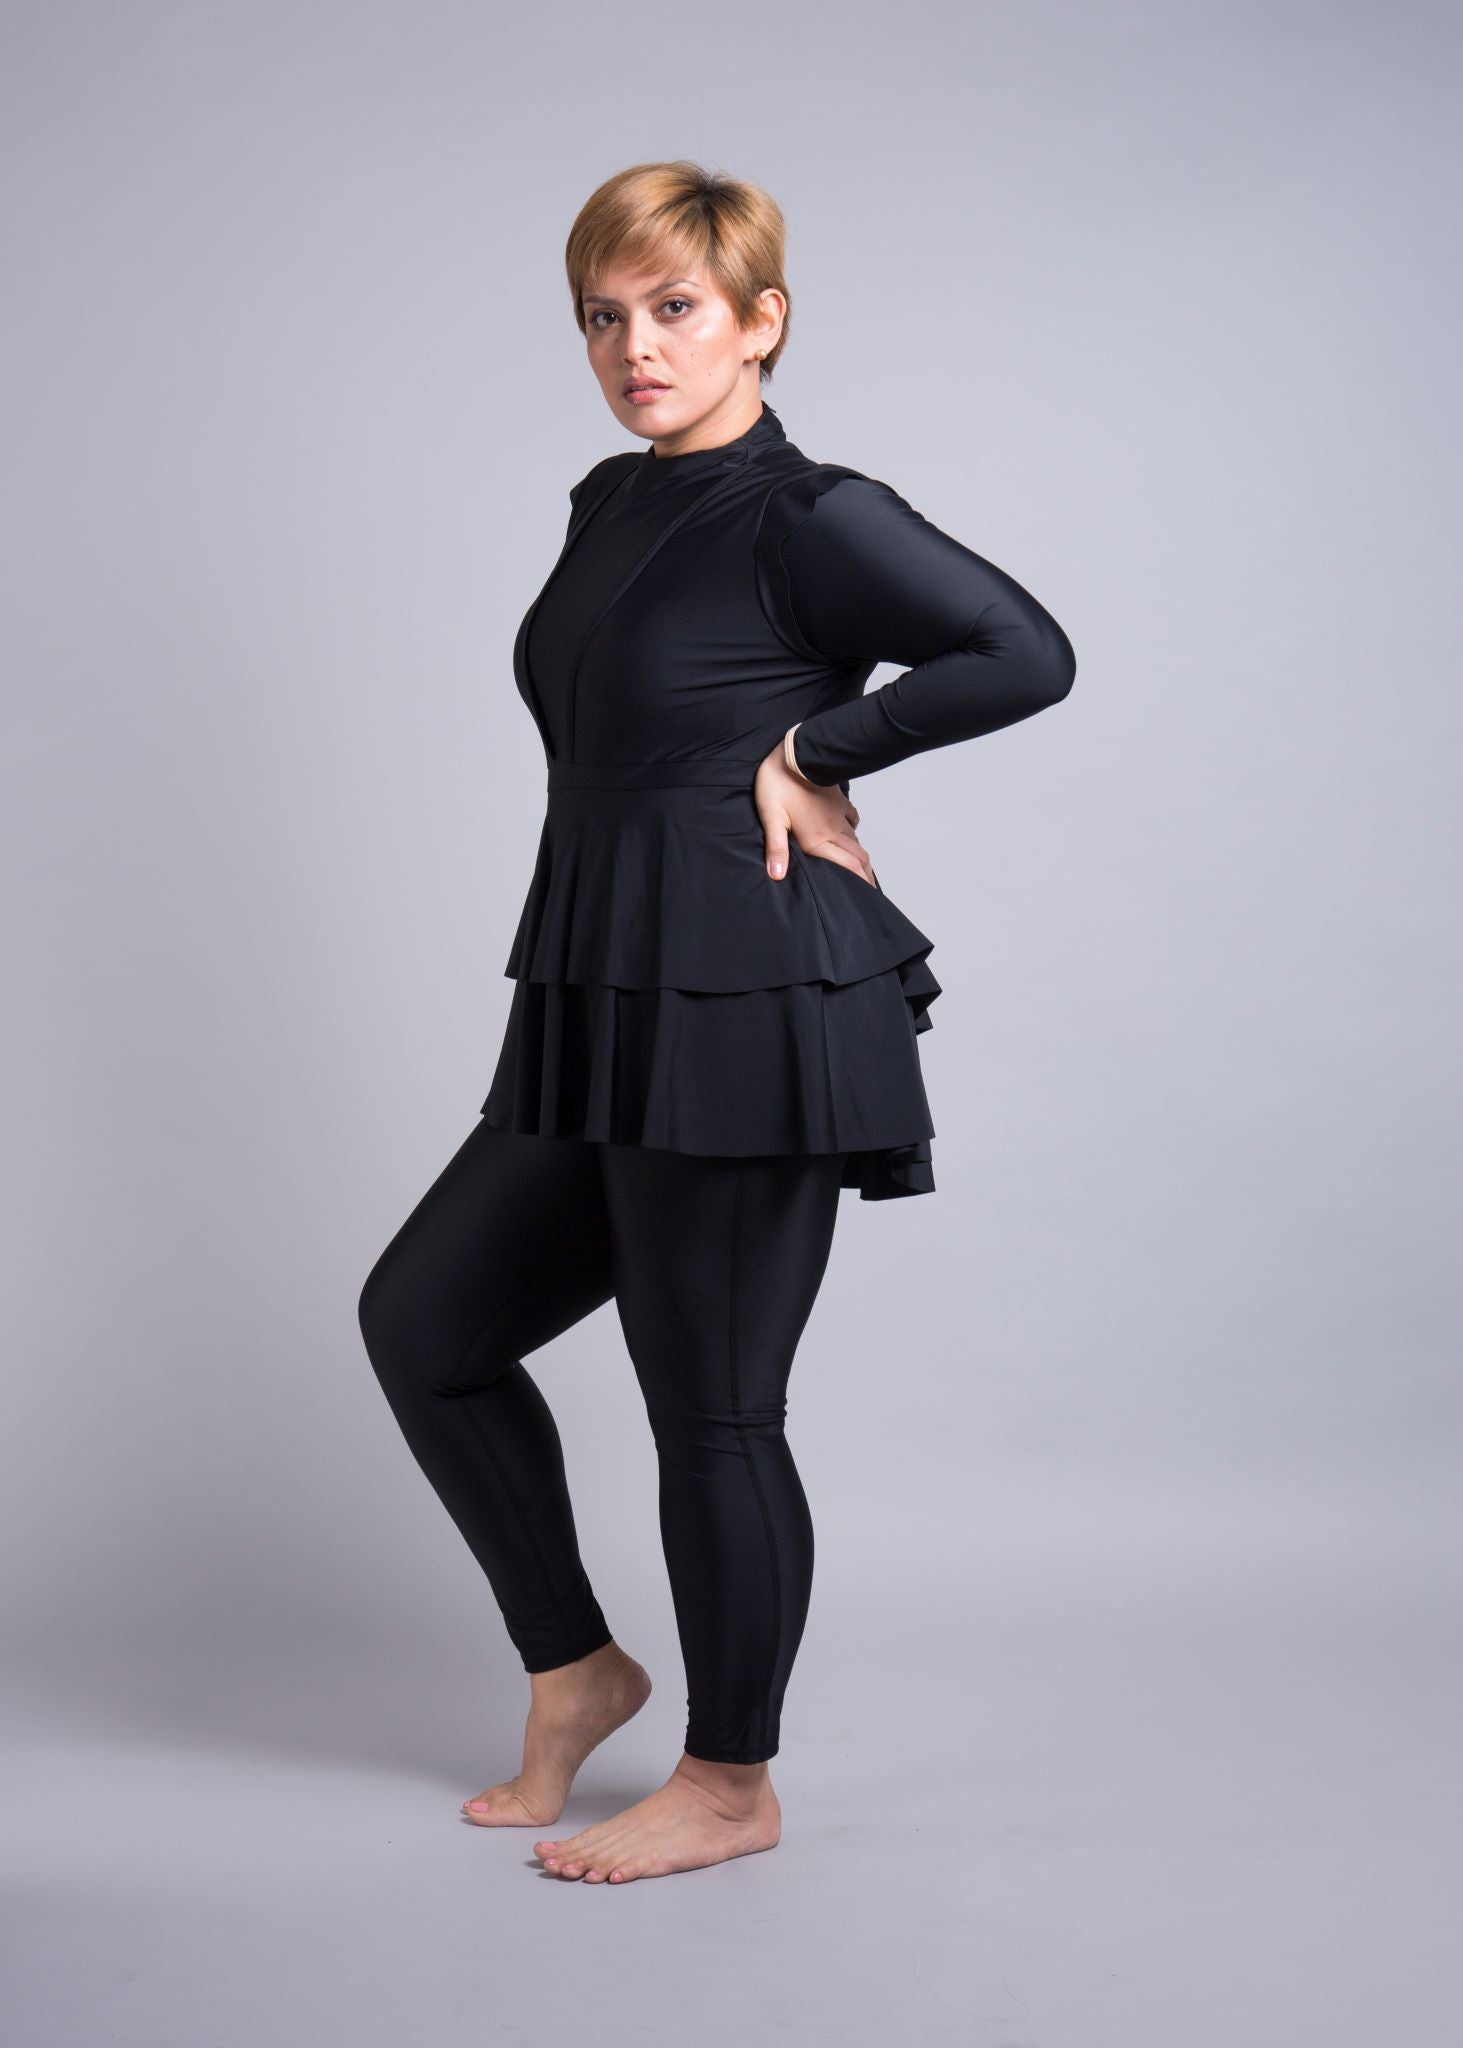 Lanuuk Serena full coverage swimsuit black burkini